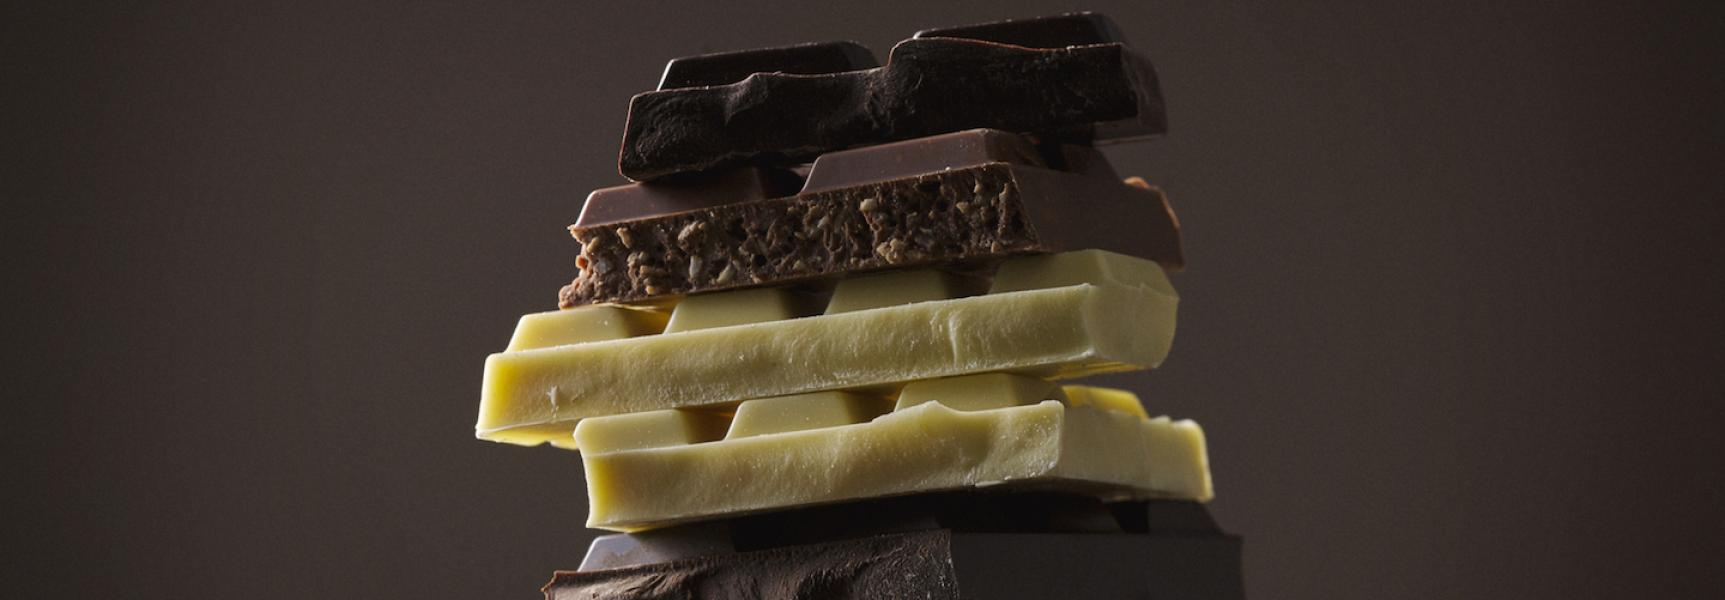 Whittakers Chocolate Blocks New Zealand